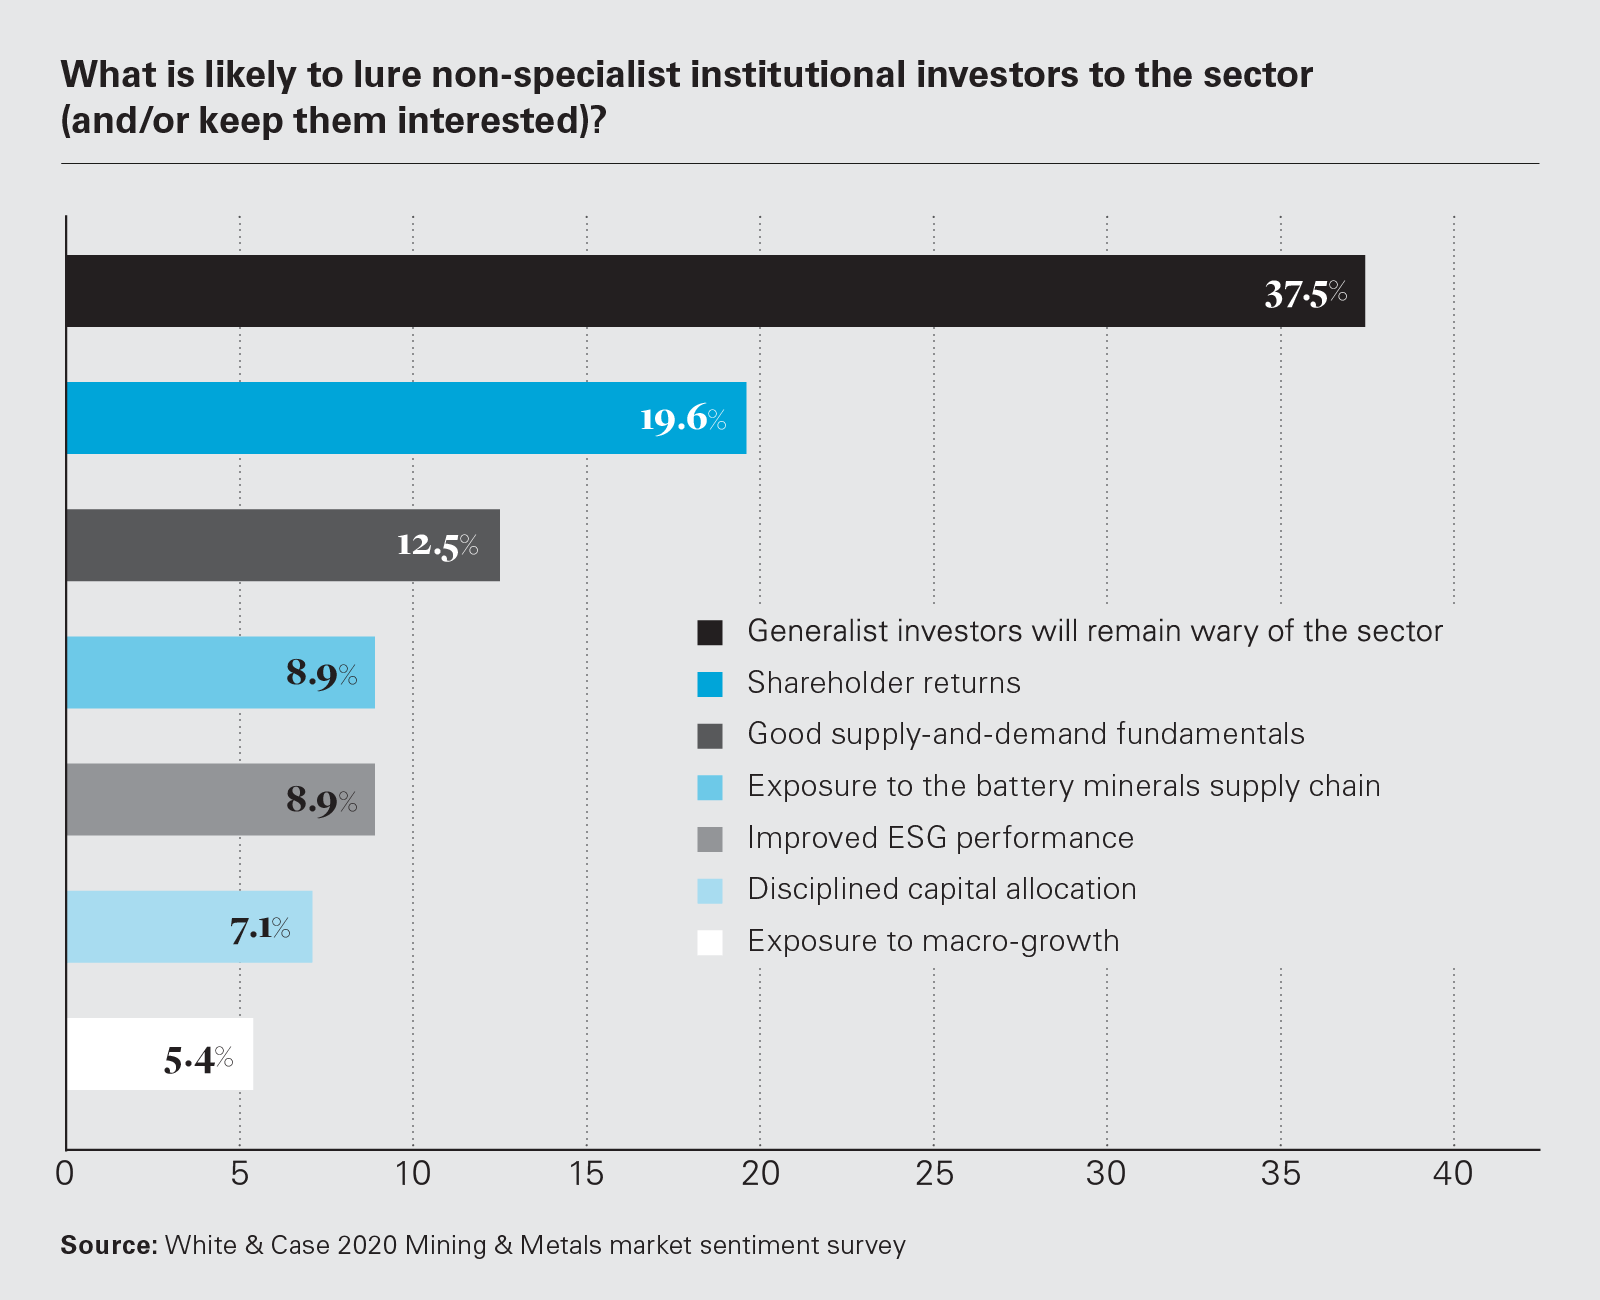 What is likely to lure non-specialist institutional investors to the sector (and/or keep them interested)? (Graph)